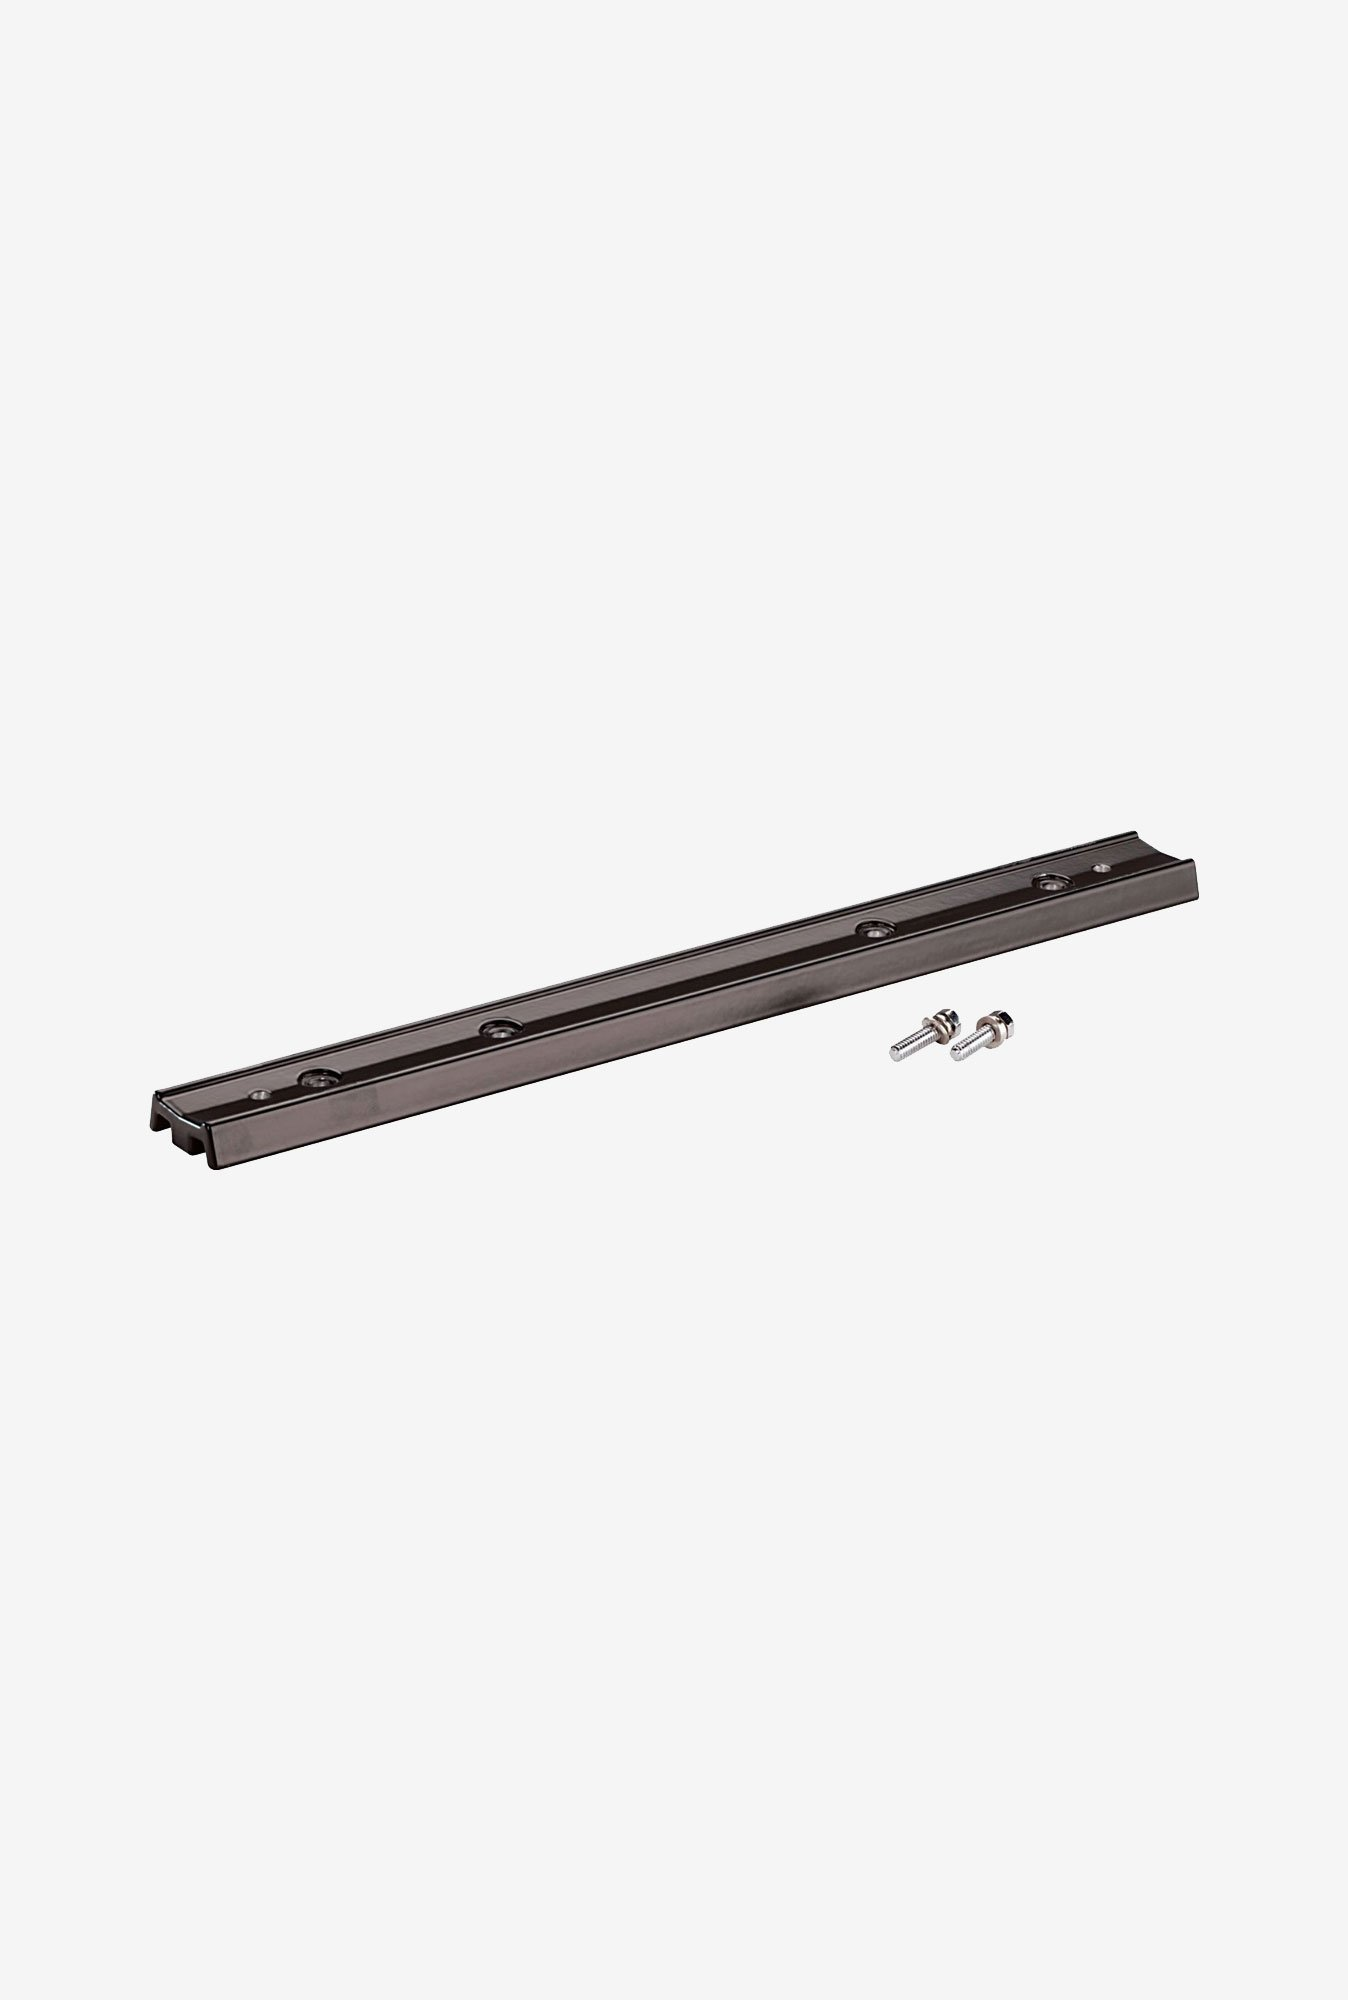 Orion 7382 Guide Scope Ring Mounting Bar (Black)